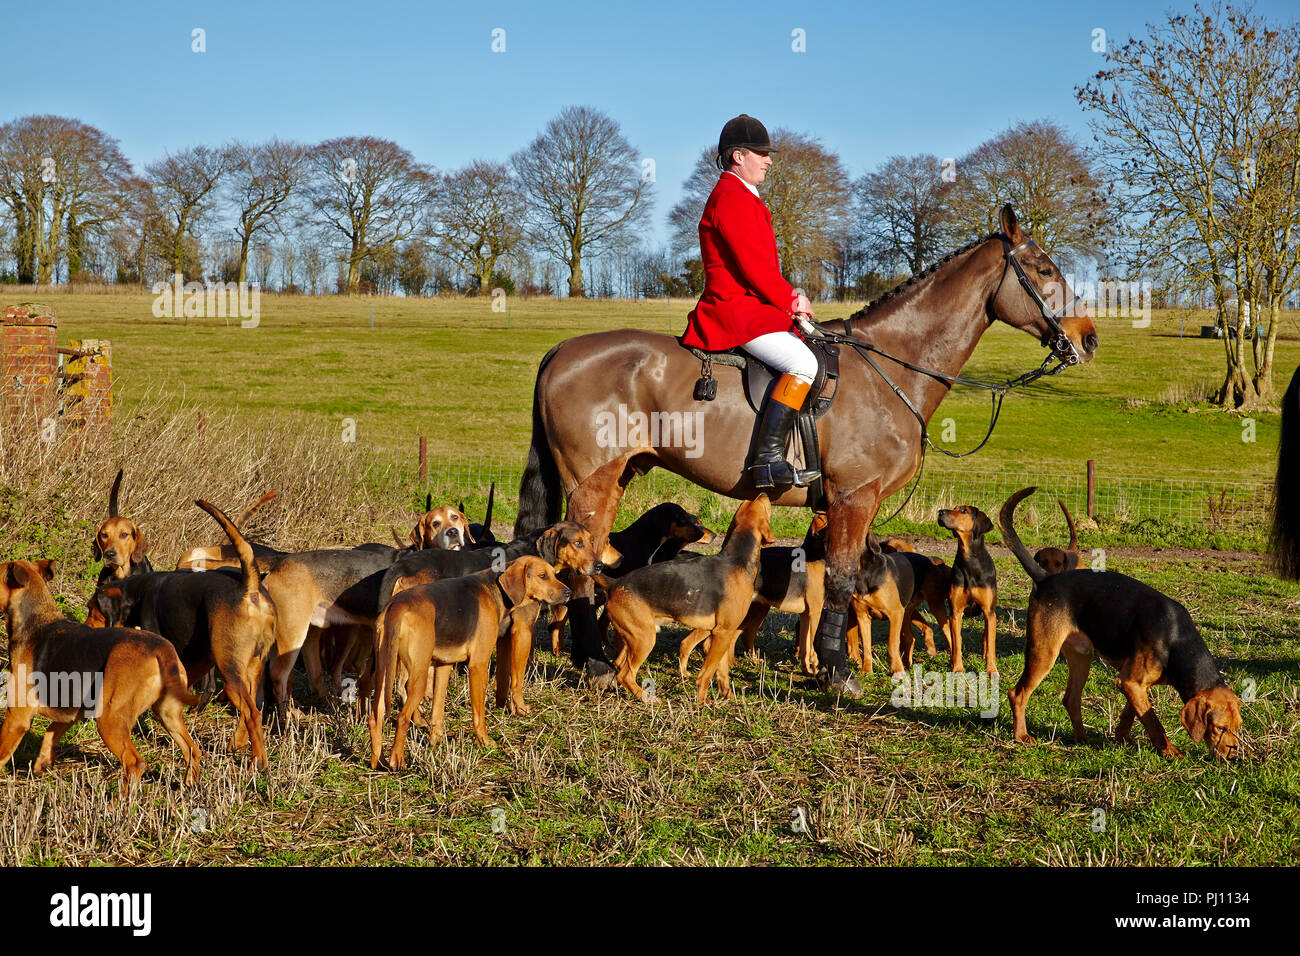 Fox hunting in England with hounds - Stock Image